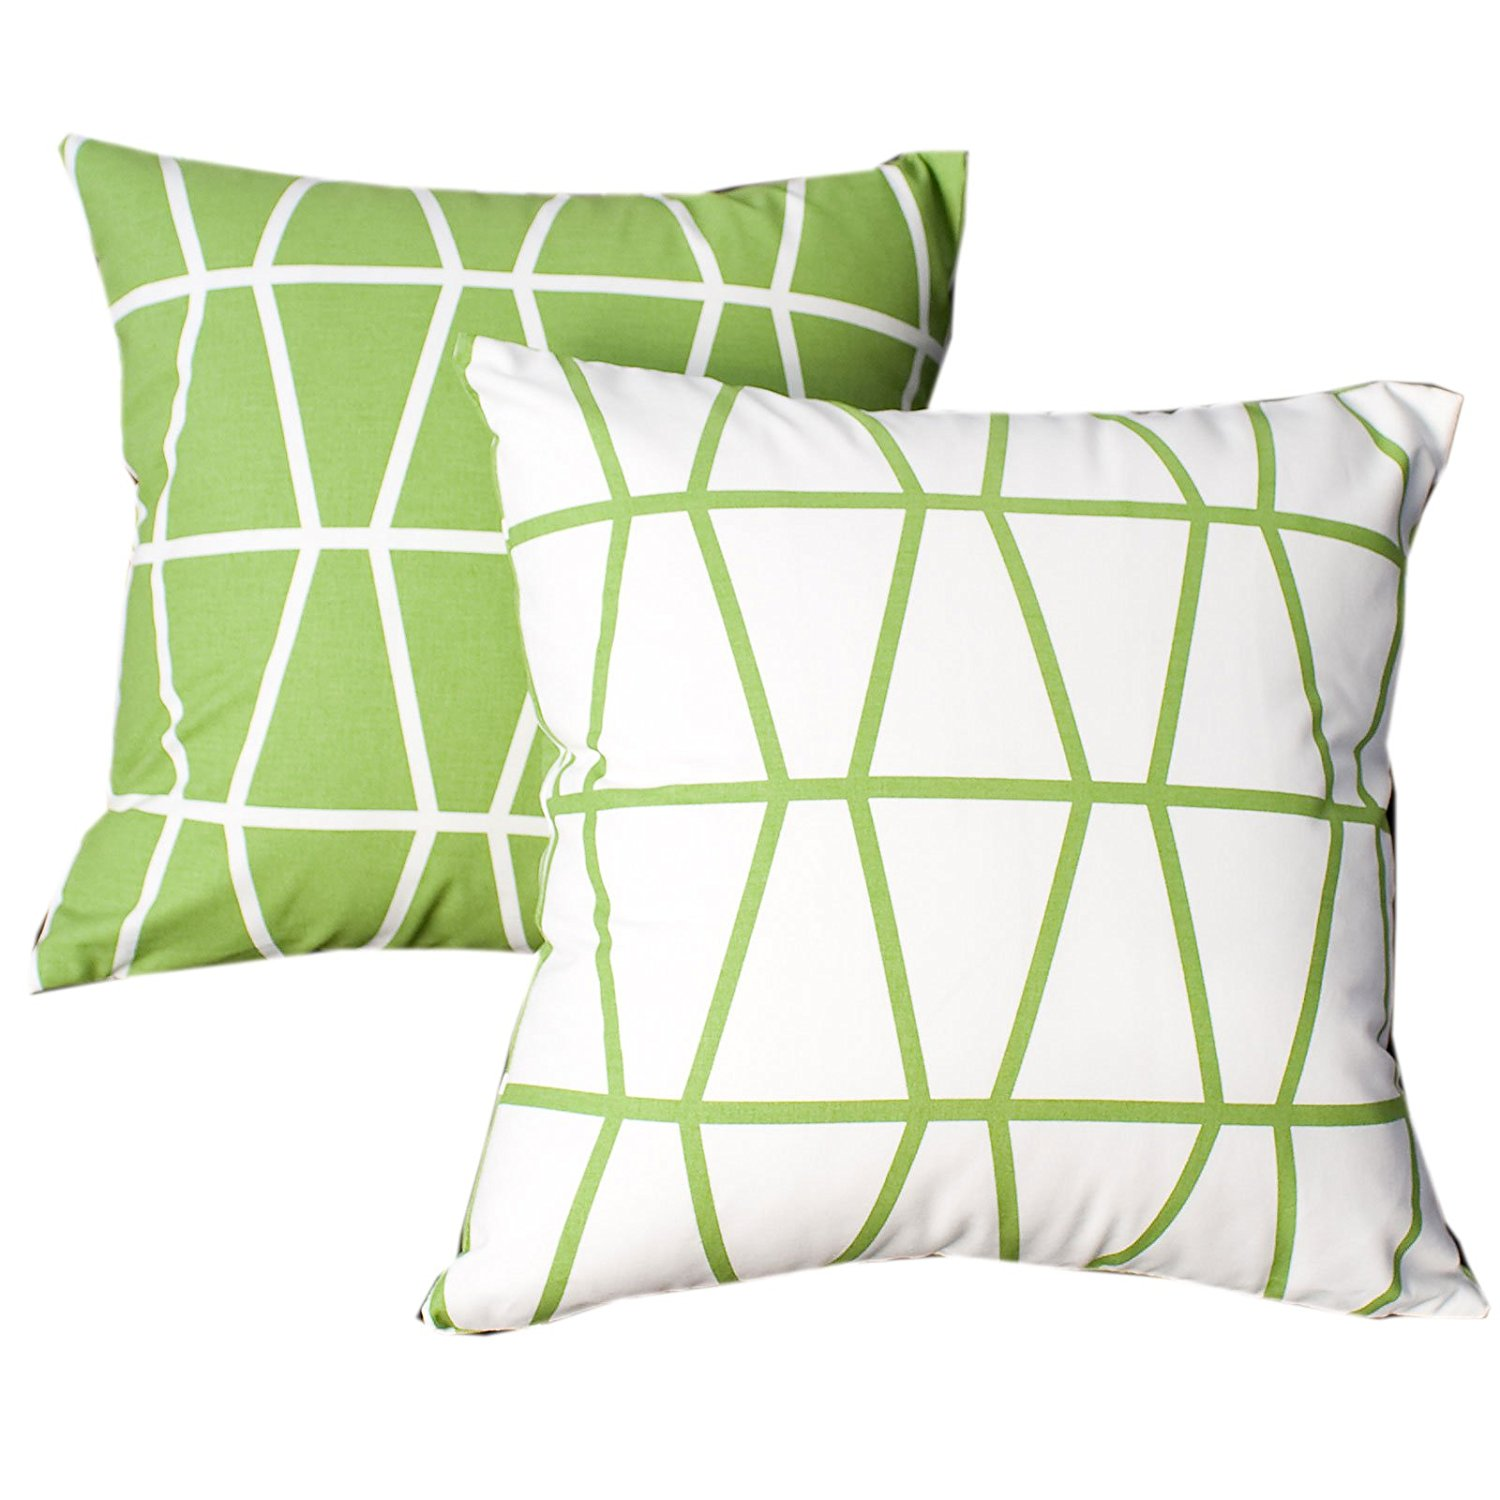 """Evei Pantheon Green Two Color Design Cotton Home Decorative Throw Pillow Case / Cushion Cover Square 16"""" 18"""" 20"""" Choice (16""""x16""""inch(40x40cm))"""